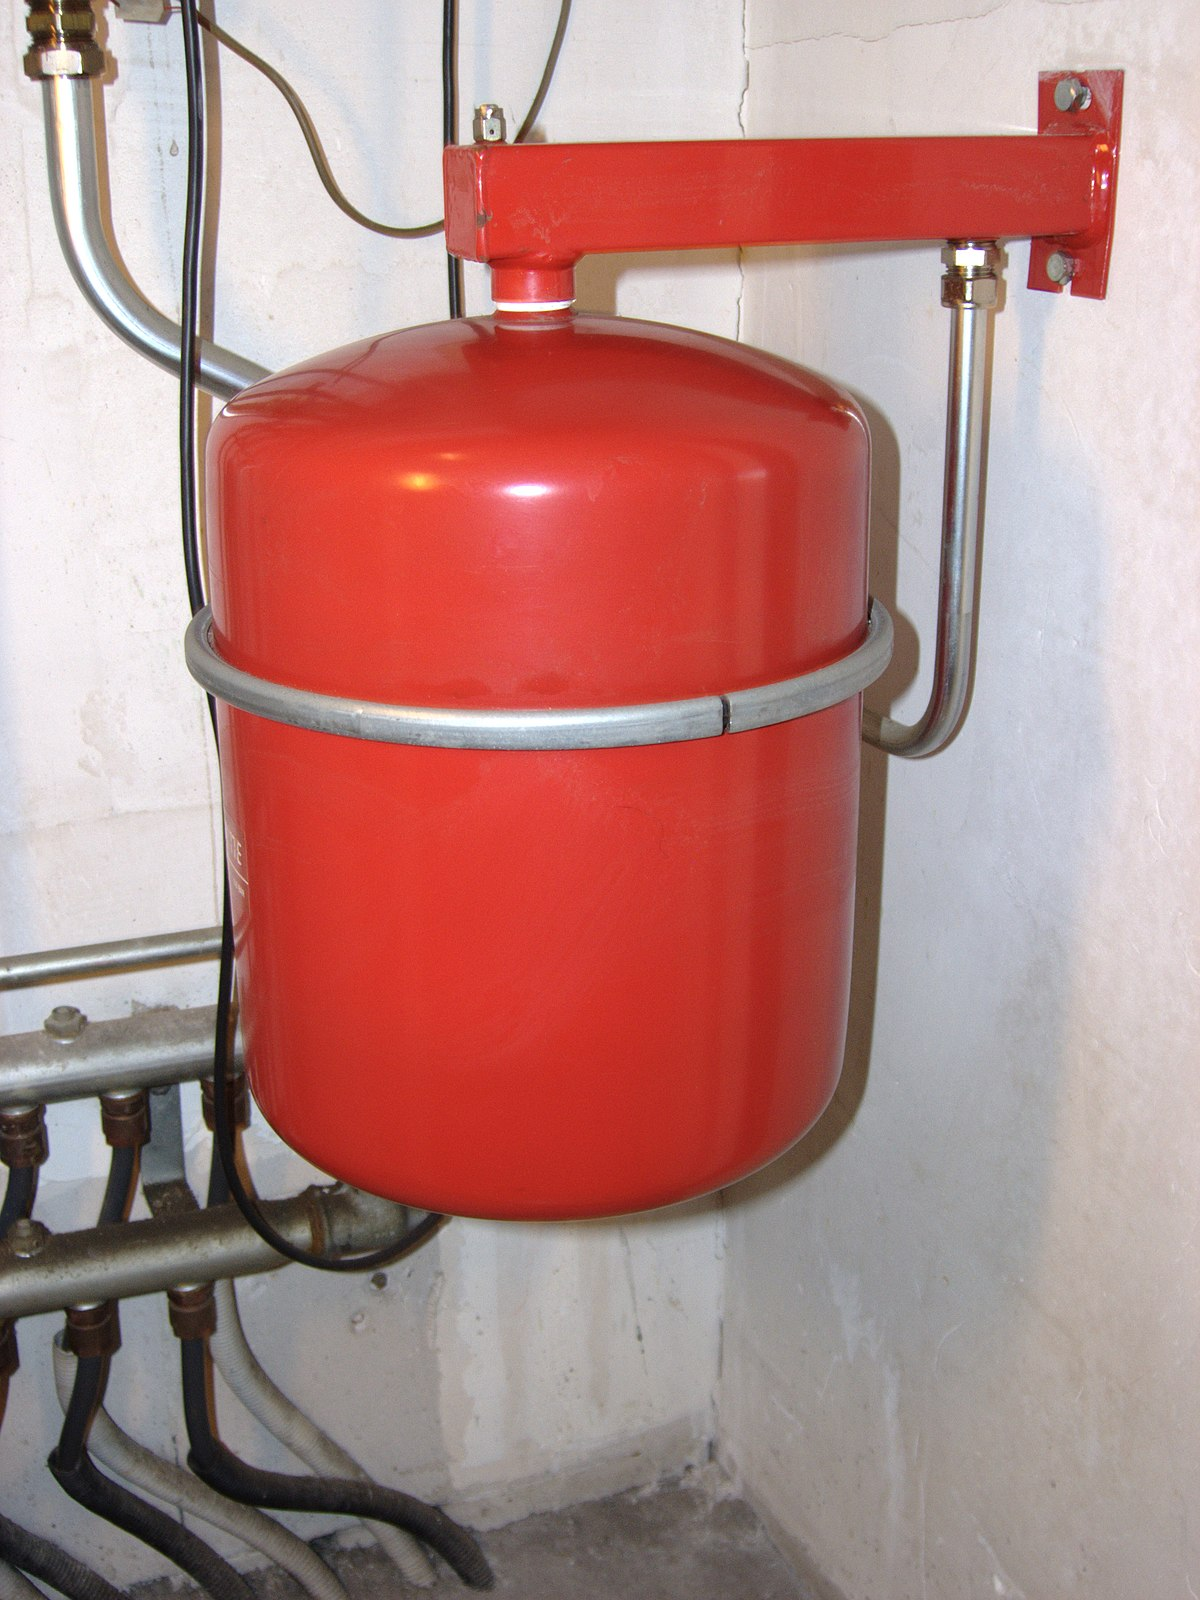 Expansion tank - Wikipedia